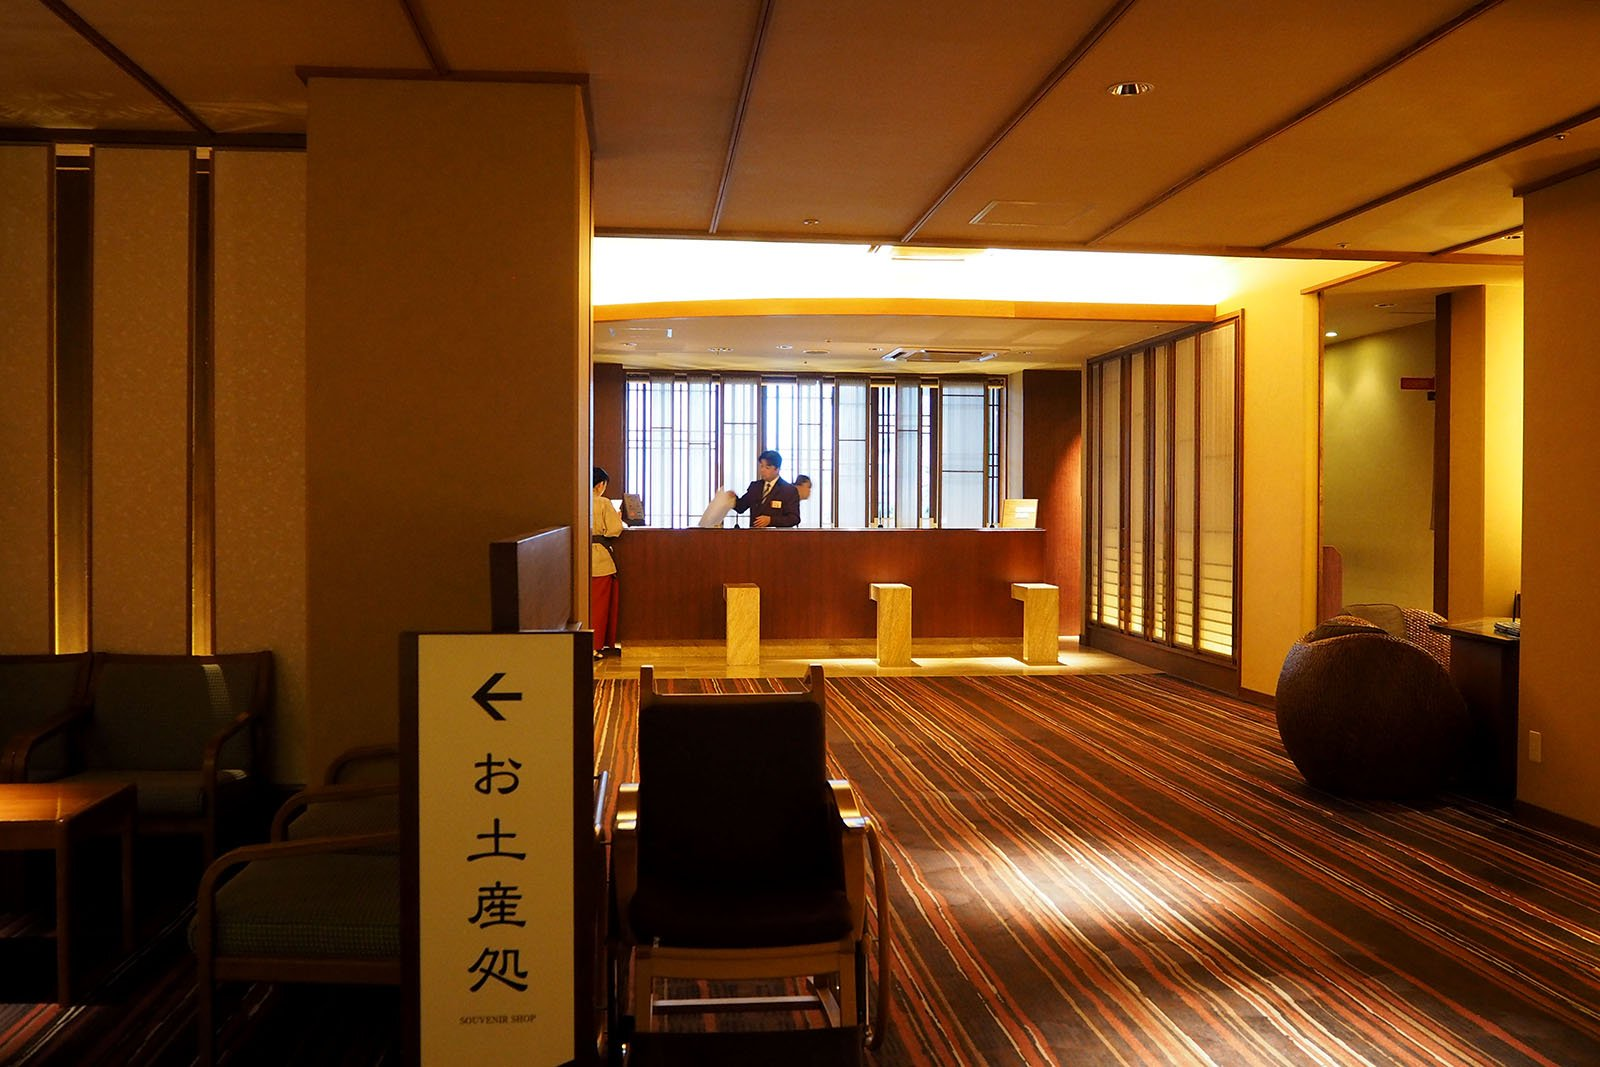 hotel lobby | Staying at Yumotokan Onsen Ryokan in Kyoto • The Petite Wanderess